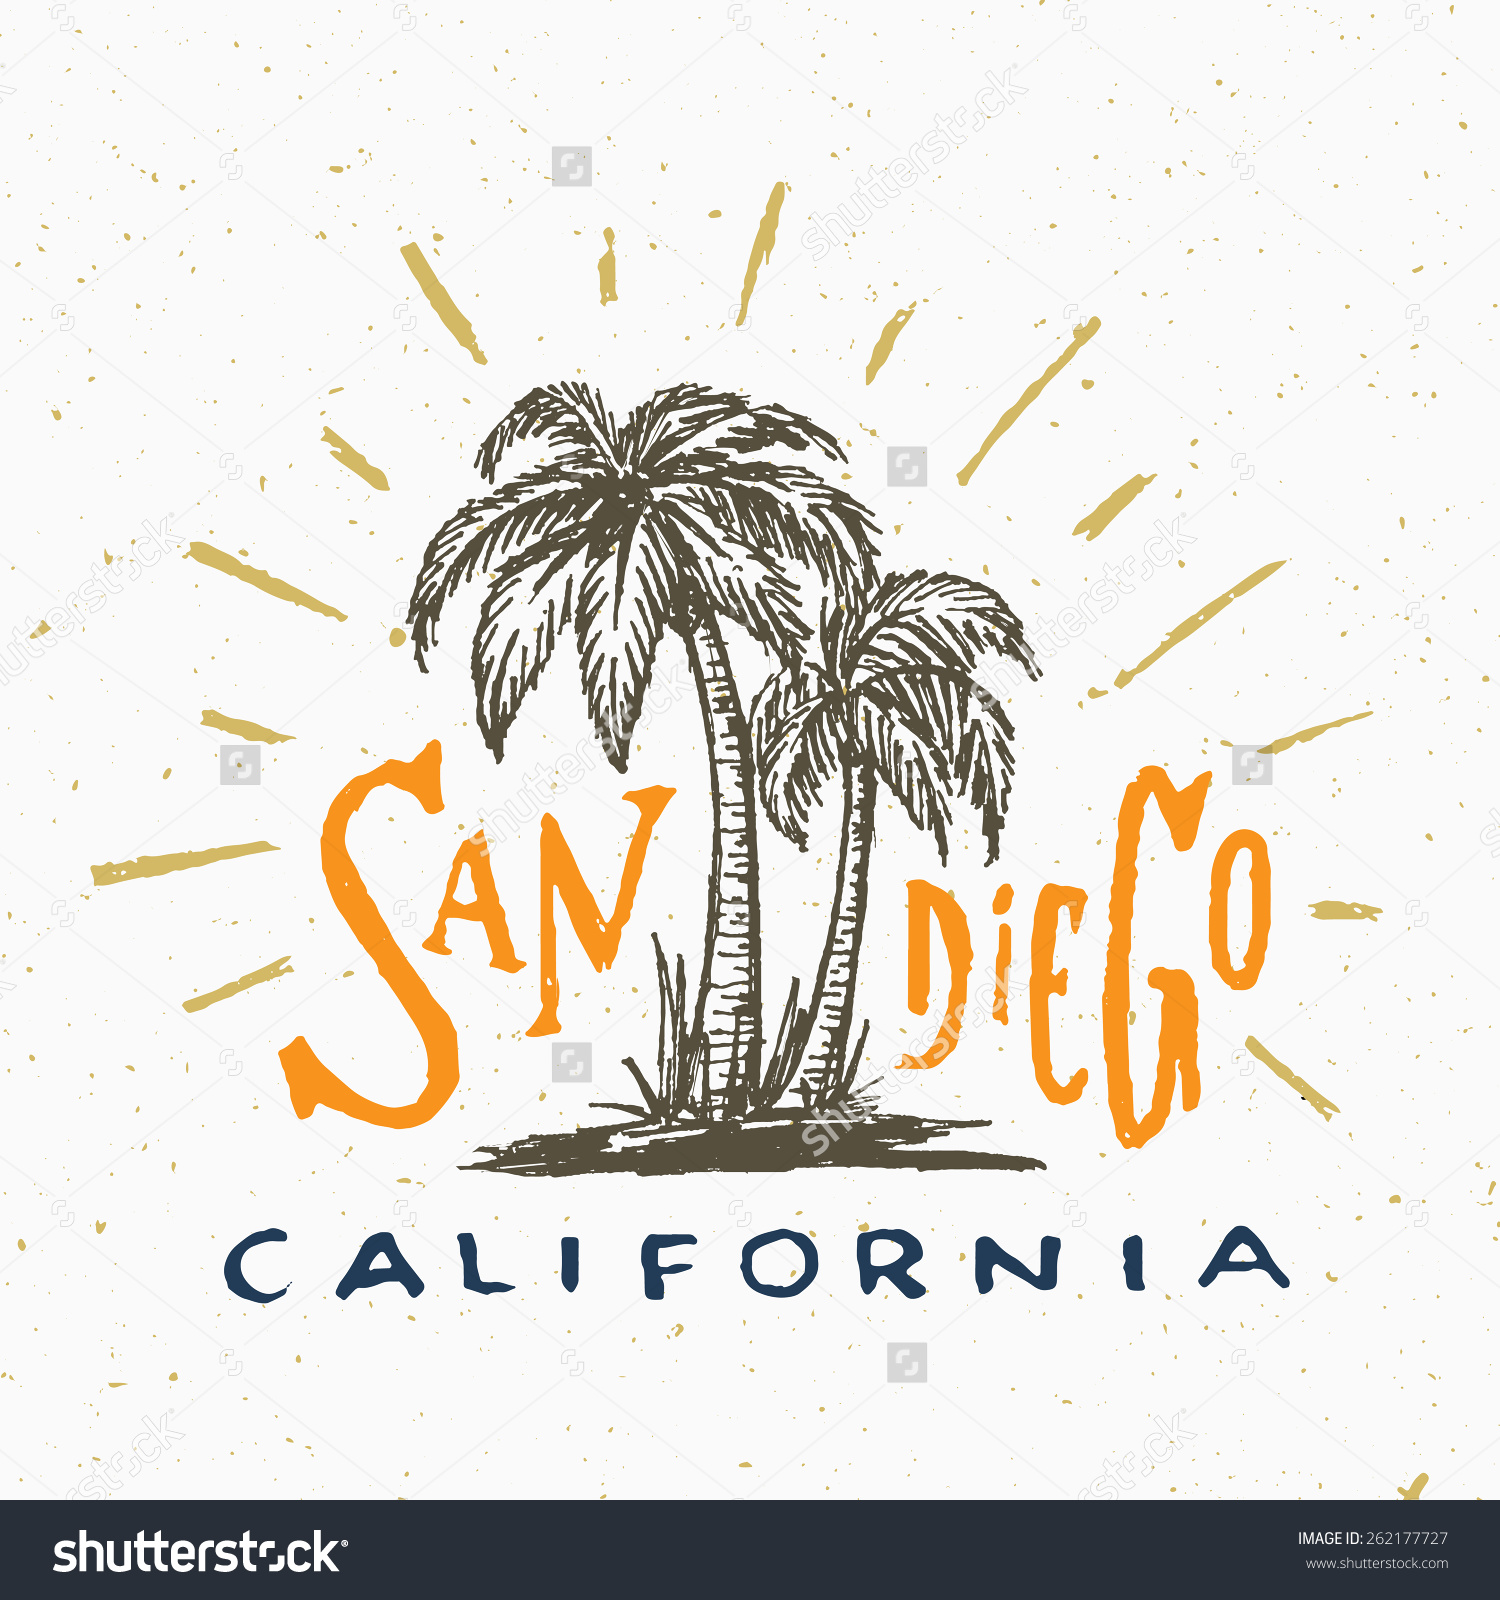 San Diego clipart #16, Download drawings